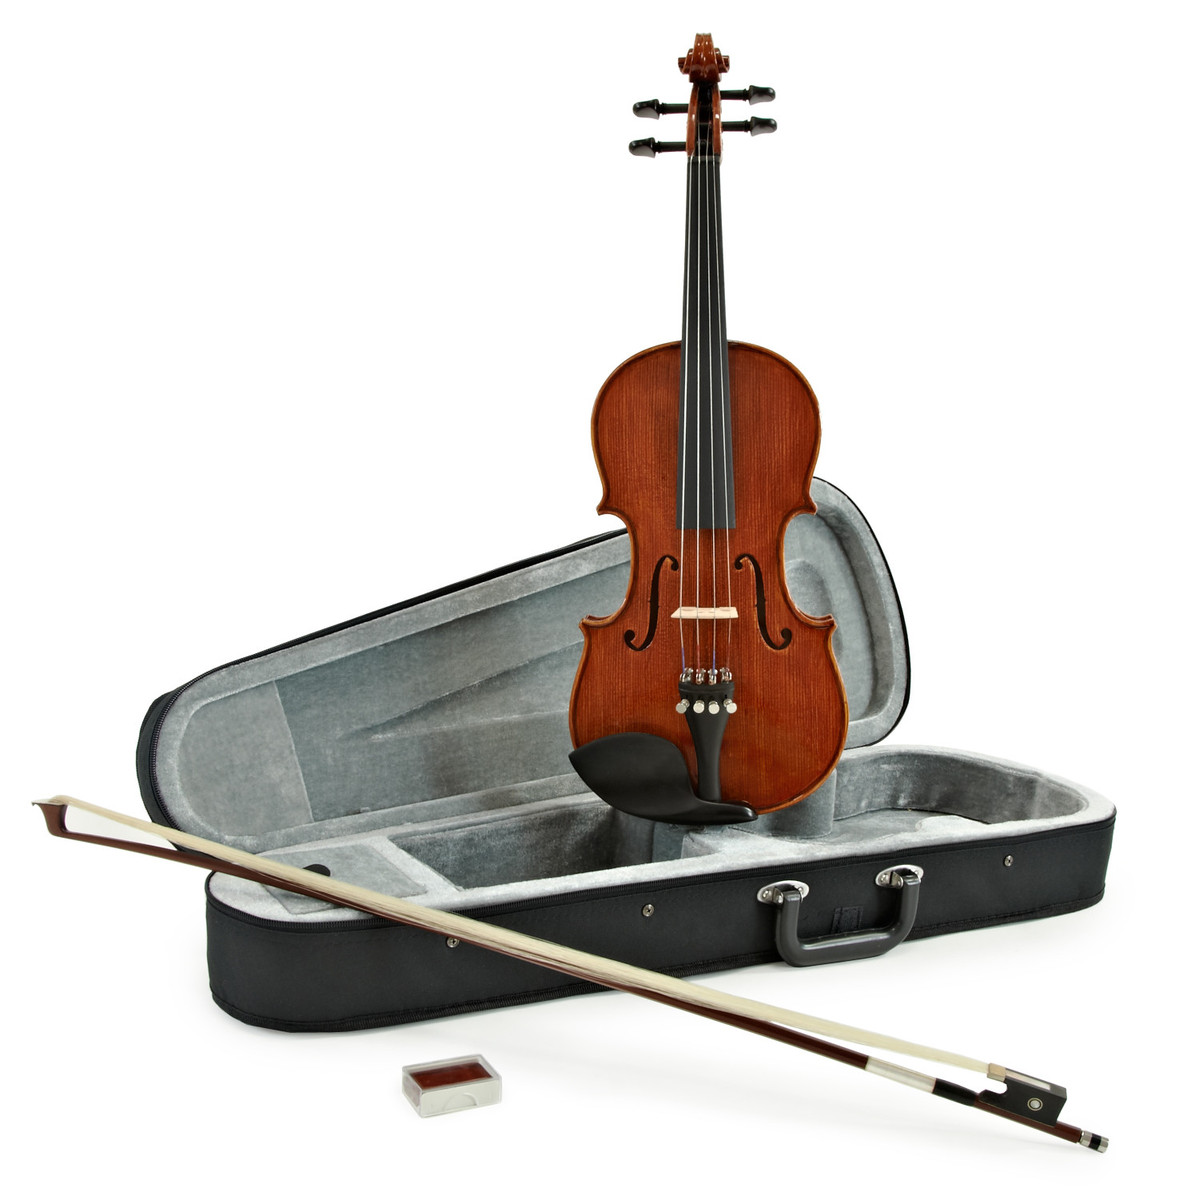 Image of Deluxe 1/4 Size Violin by Gear4music